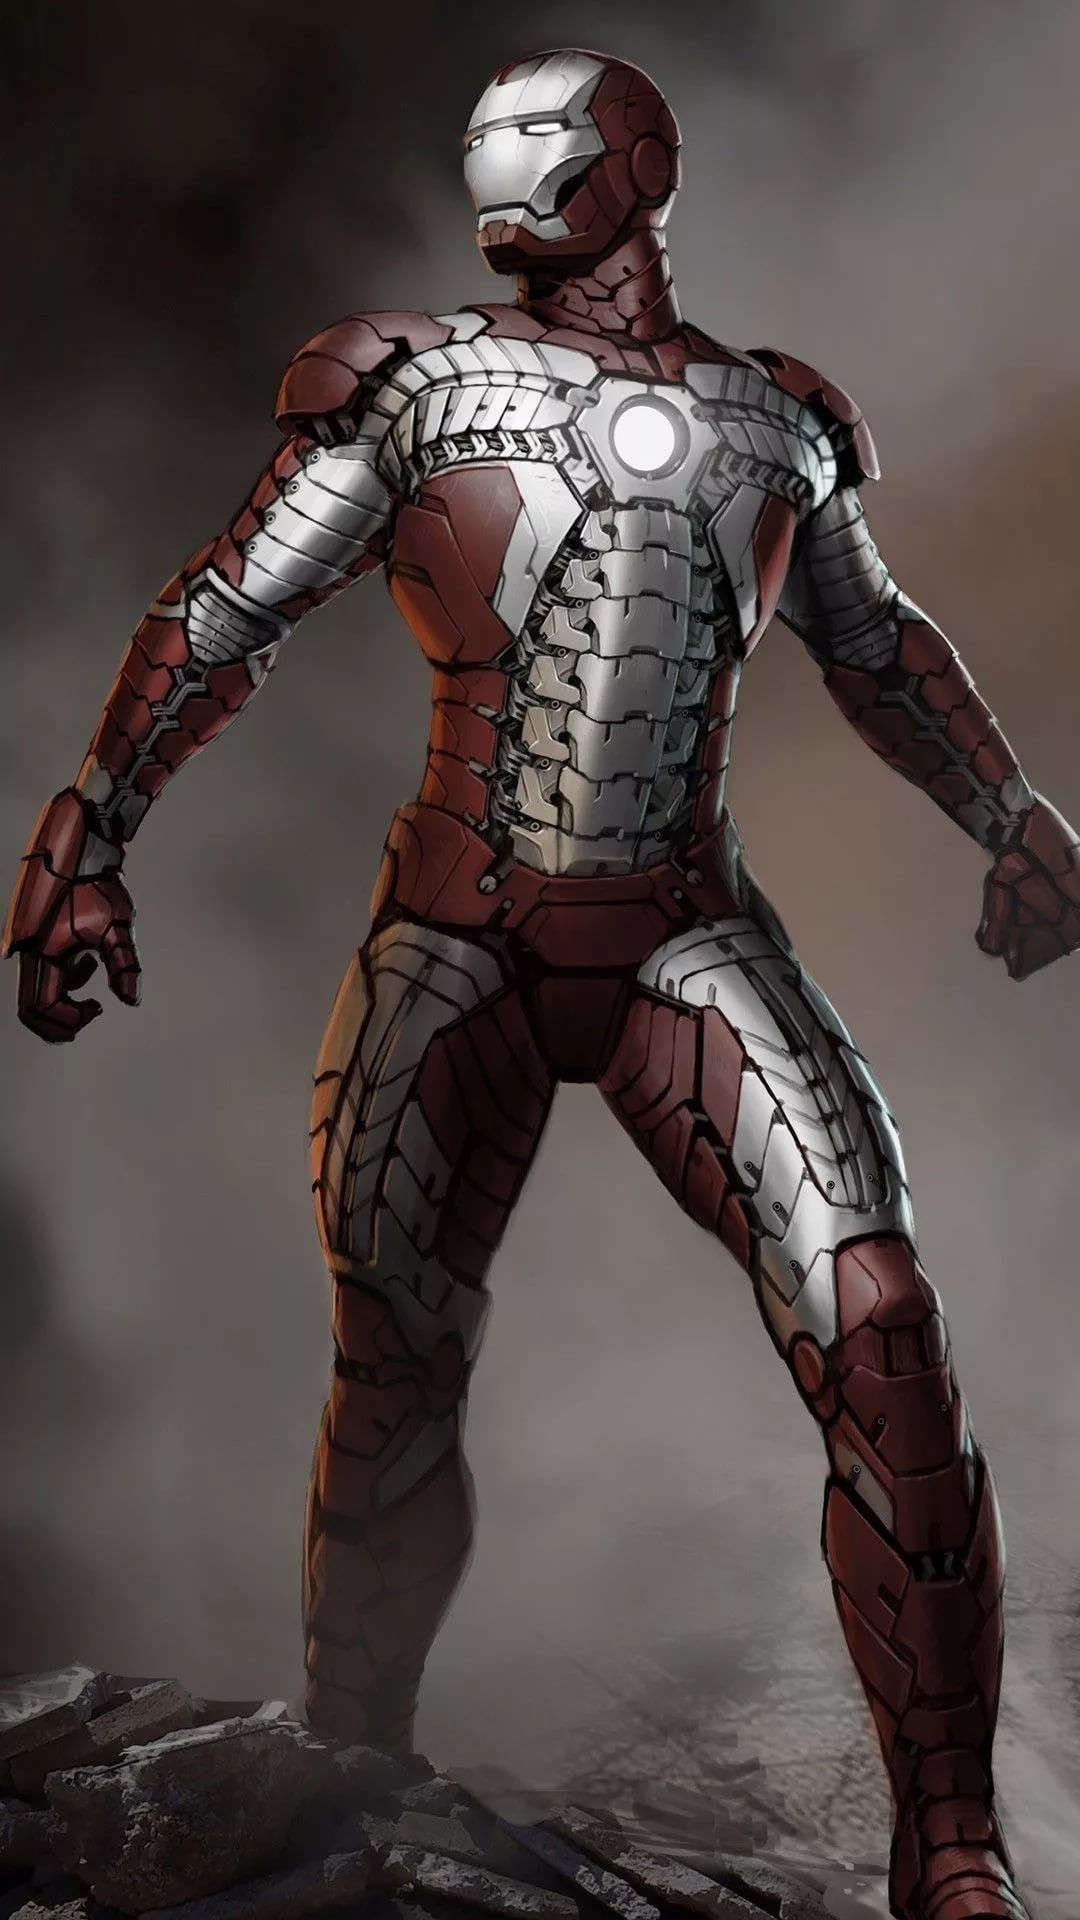 Iron Man For Mobile iPhone 5 wallpaper